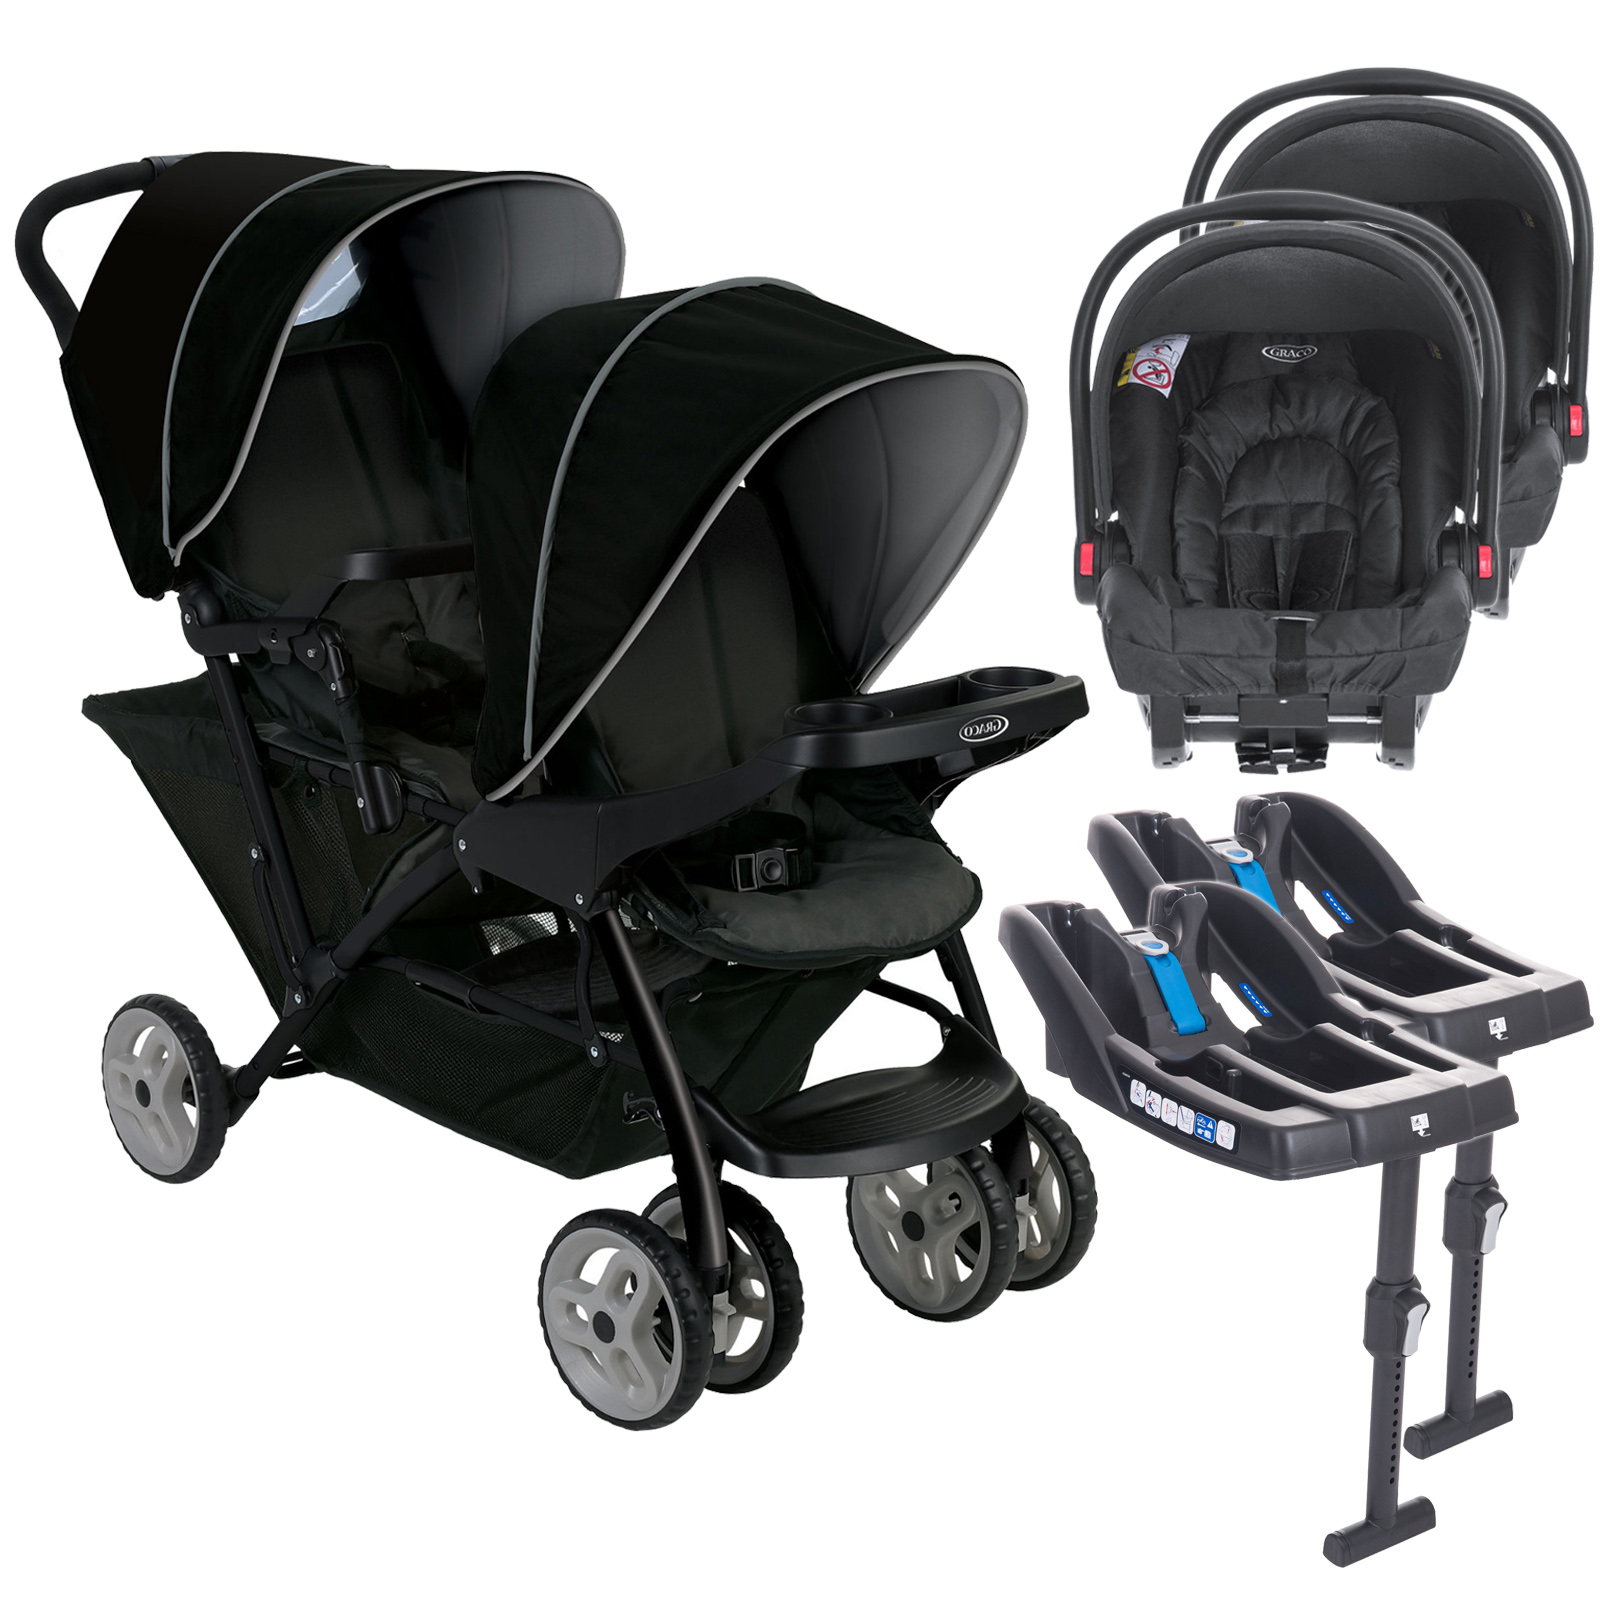 Twin Stroller And Carseat Graco Stadium Duo Double Pram Twin Travel System With 2 Snugride Car Seat Bases Black Grey